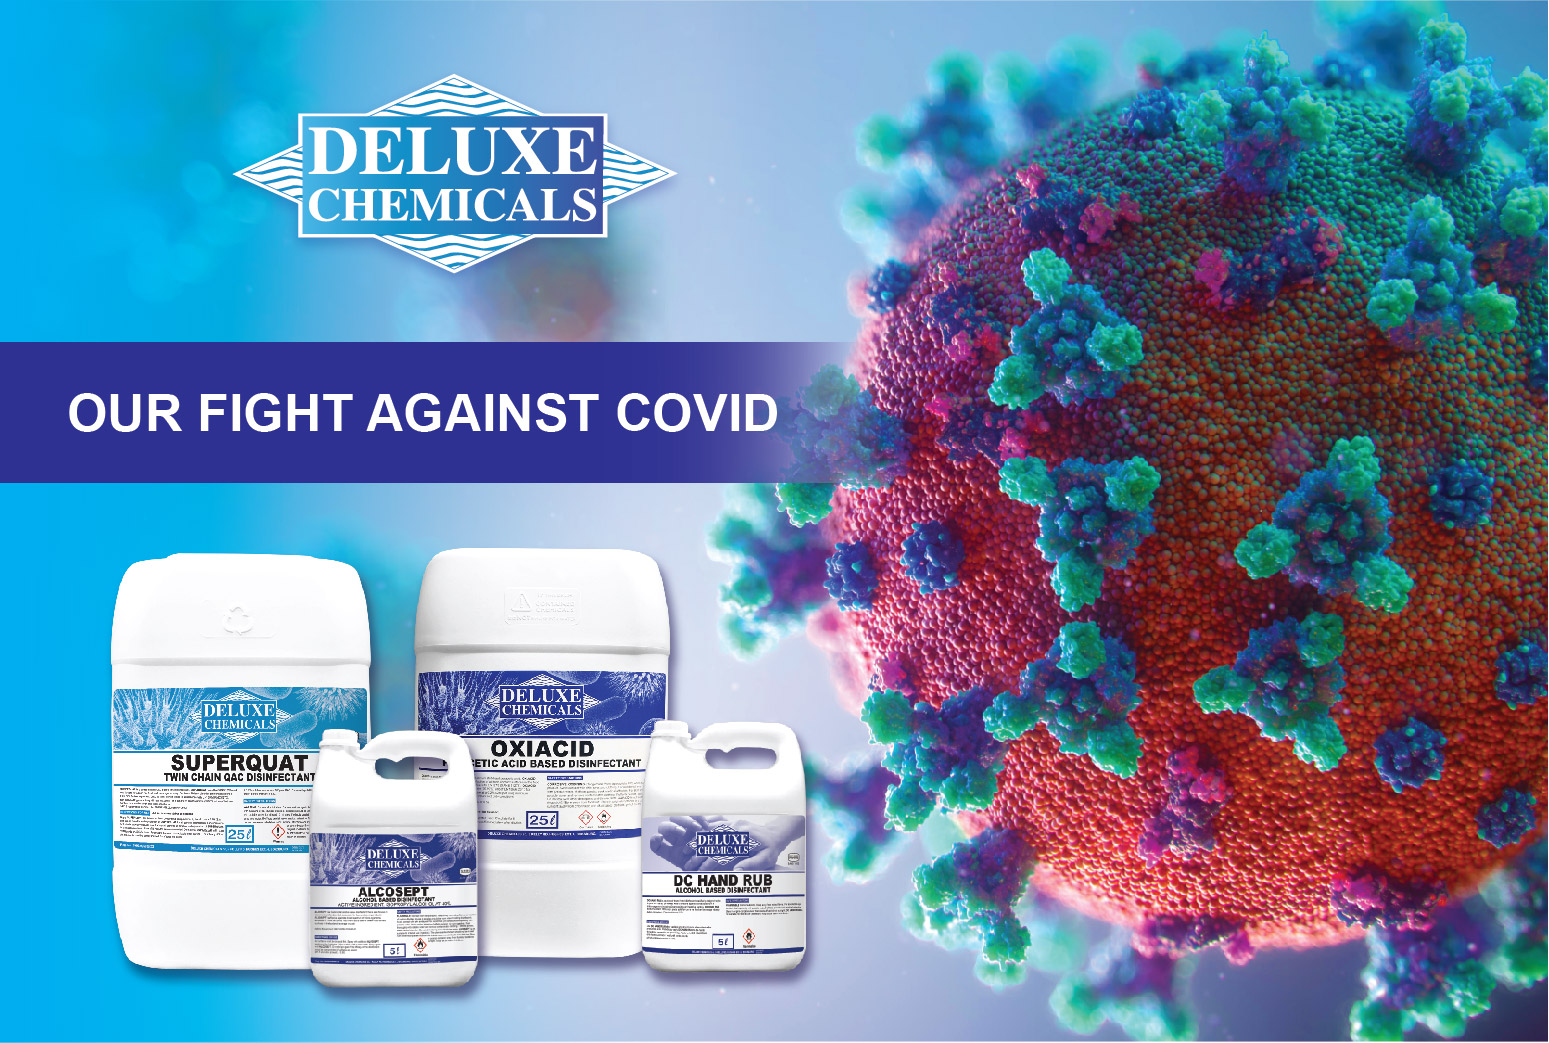 Deluxe Chemicals has disinfectants proven to kill COVID